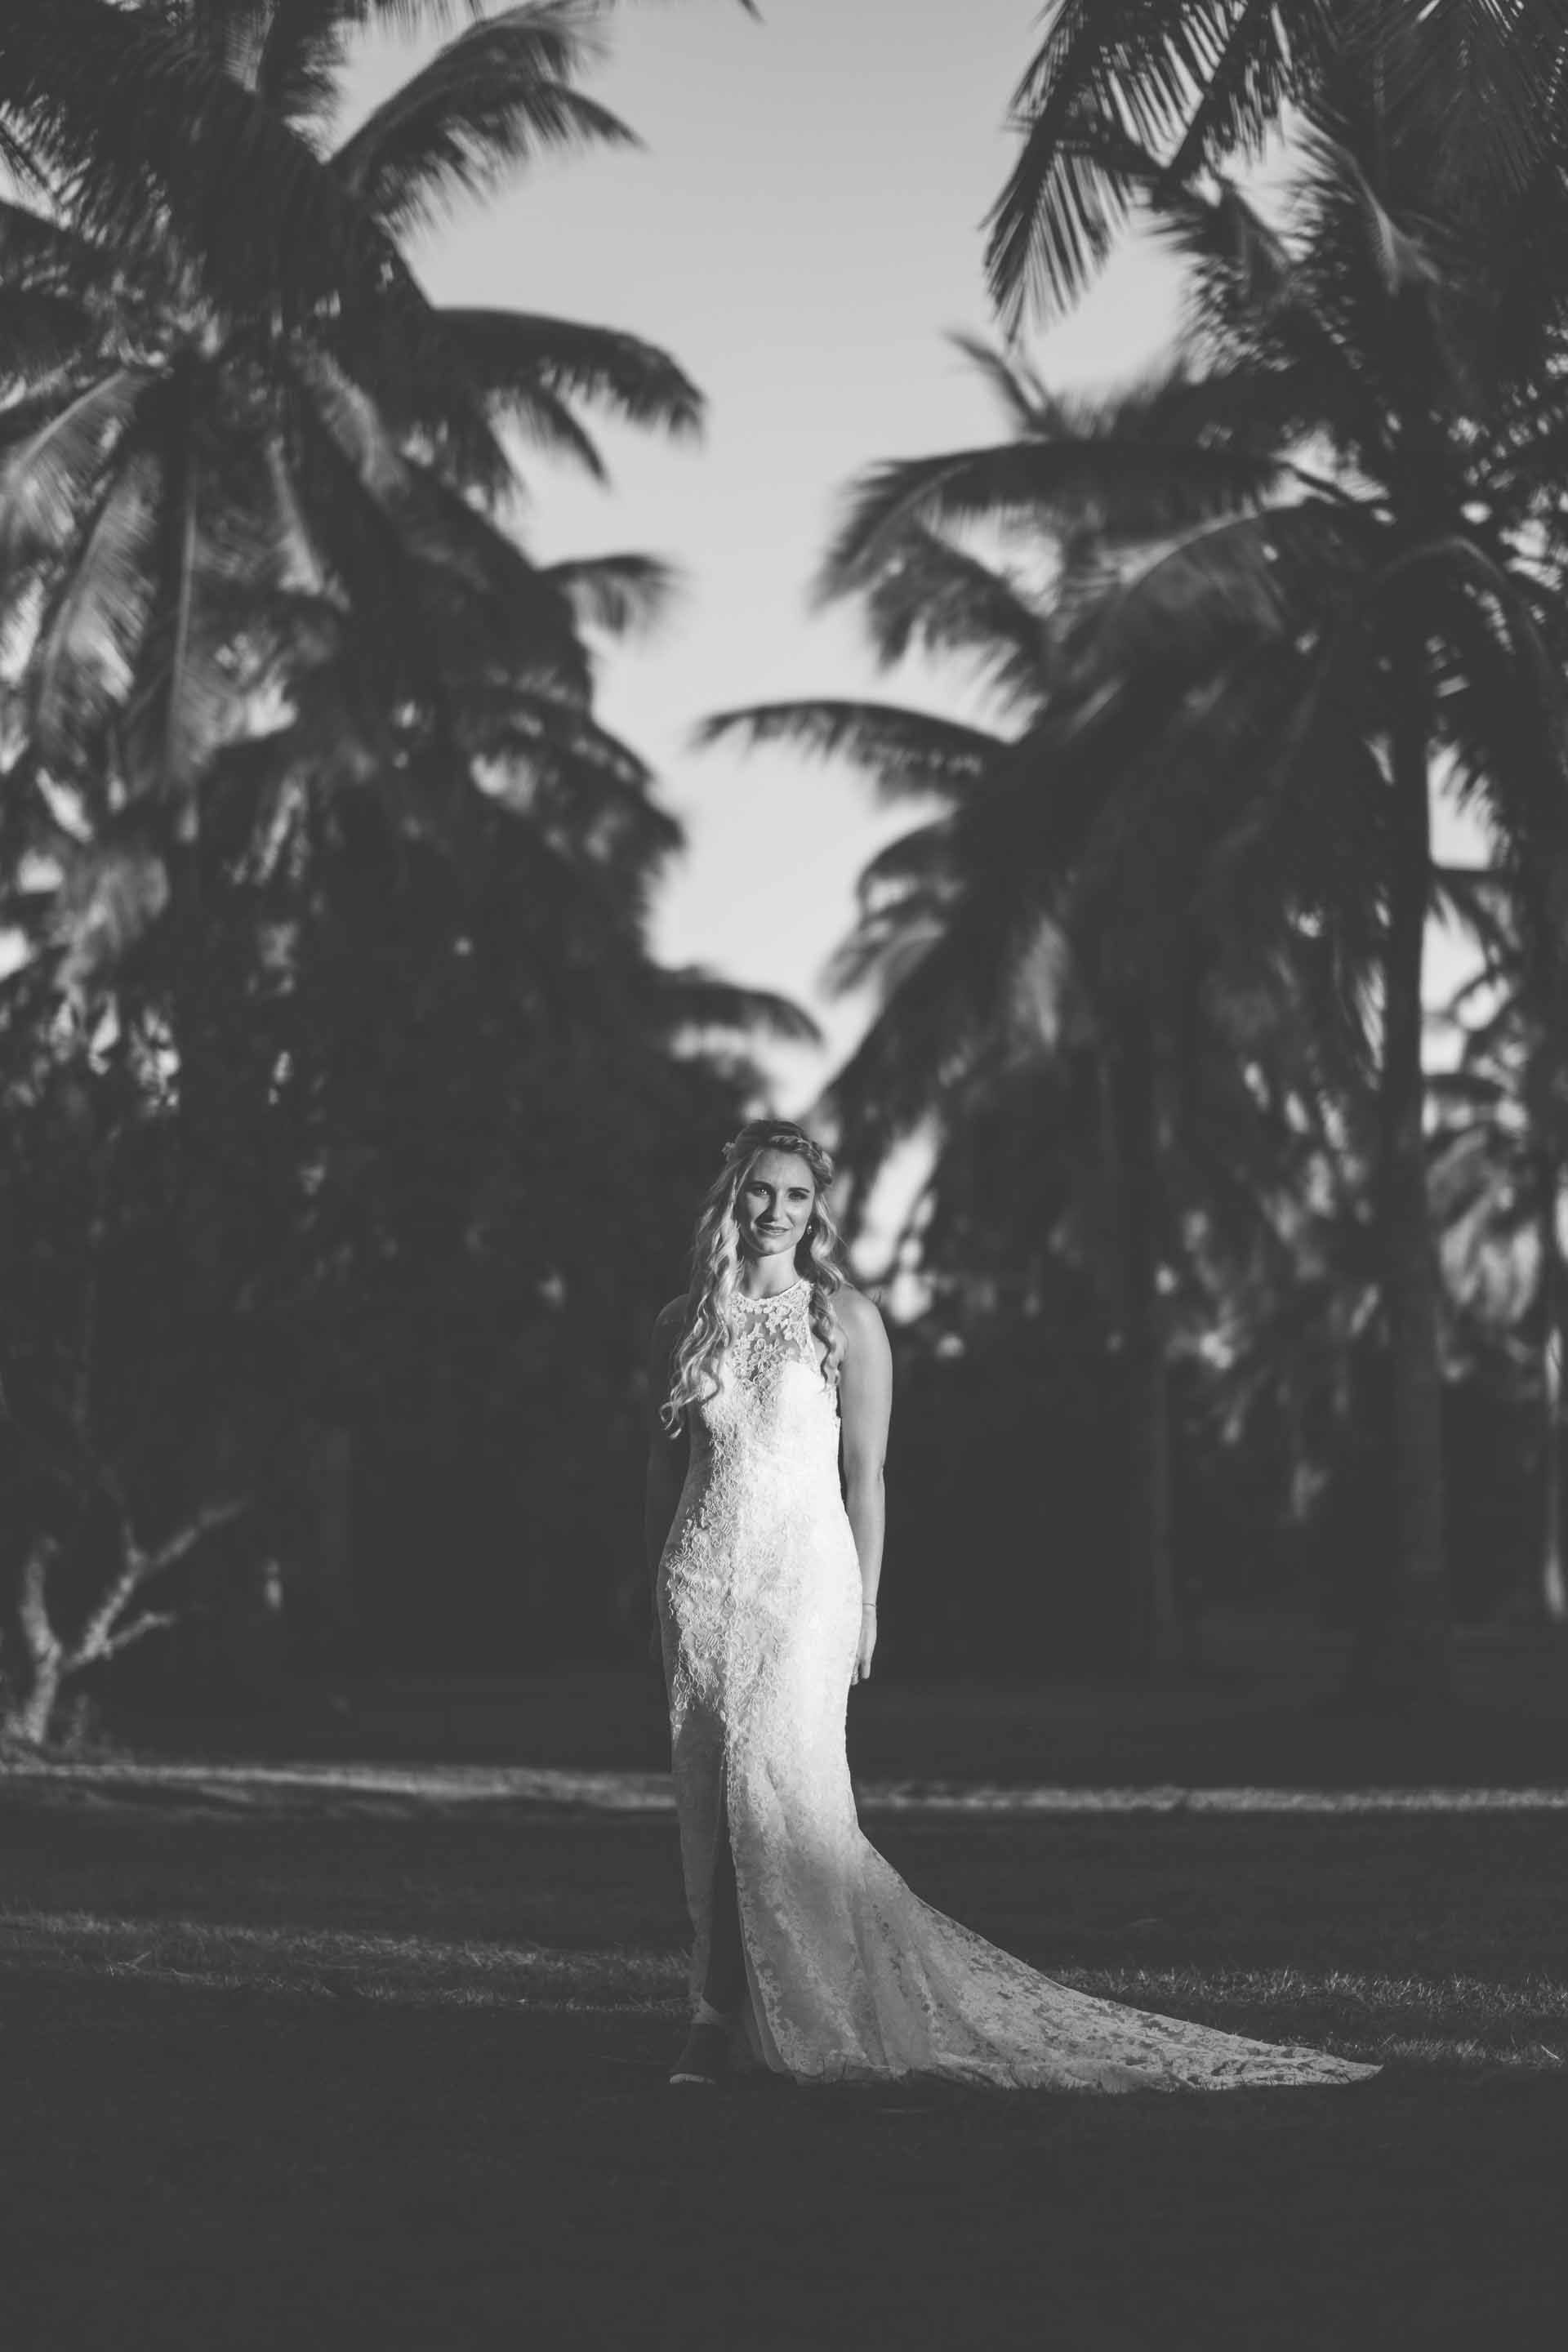 full length portrait of the bride between rows of coconut trees in black and white